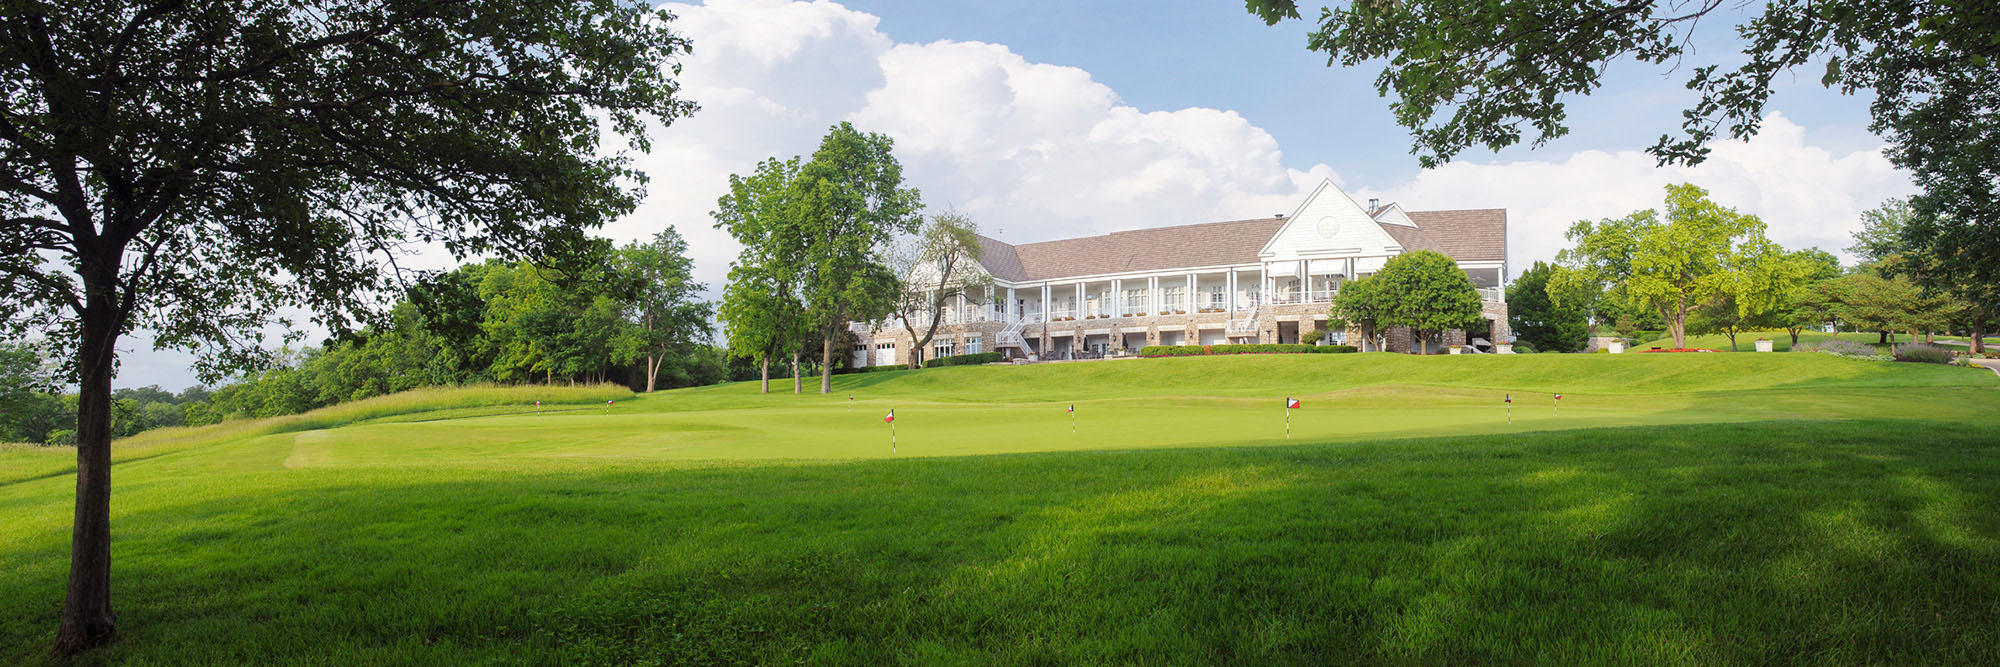 Golf Course Image - Hallbrook Country Club House